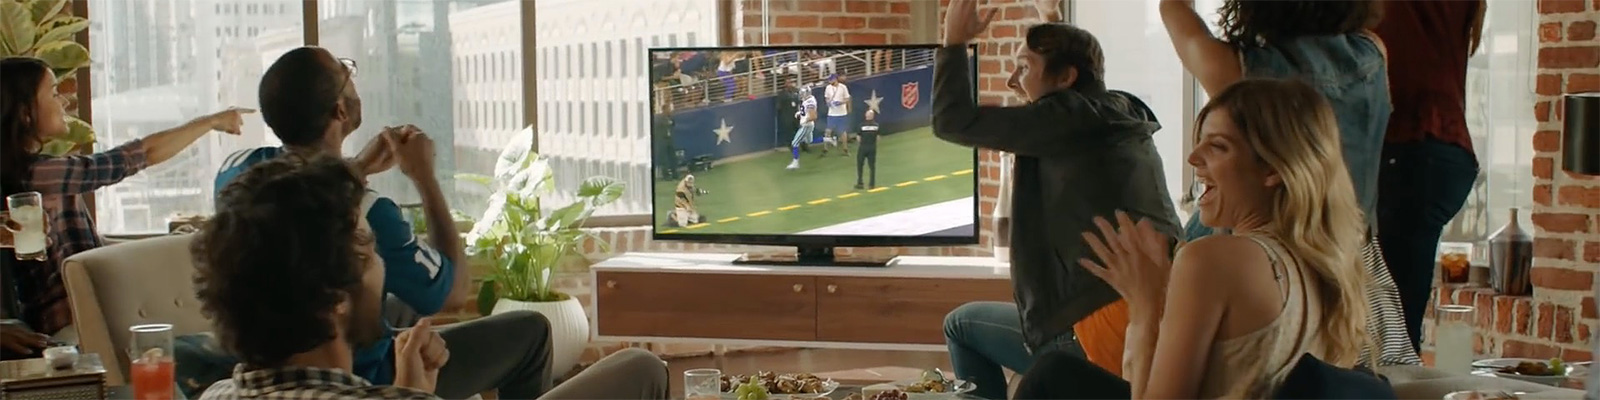 NFLSUNDAYTICKET.TV Now You Can TV Commercial(DIRECTV)